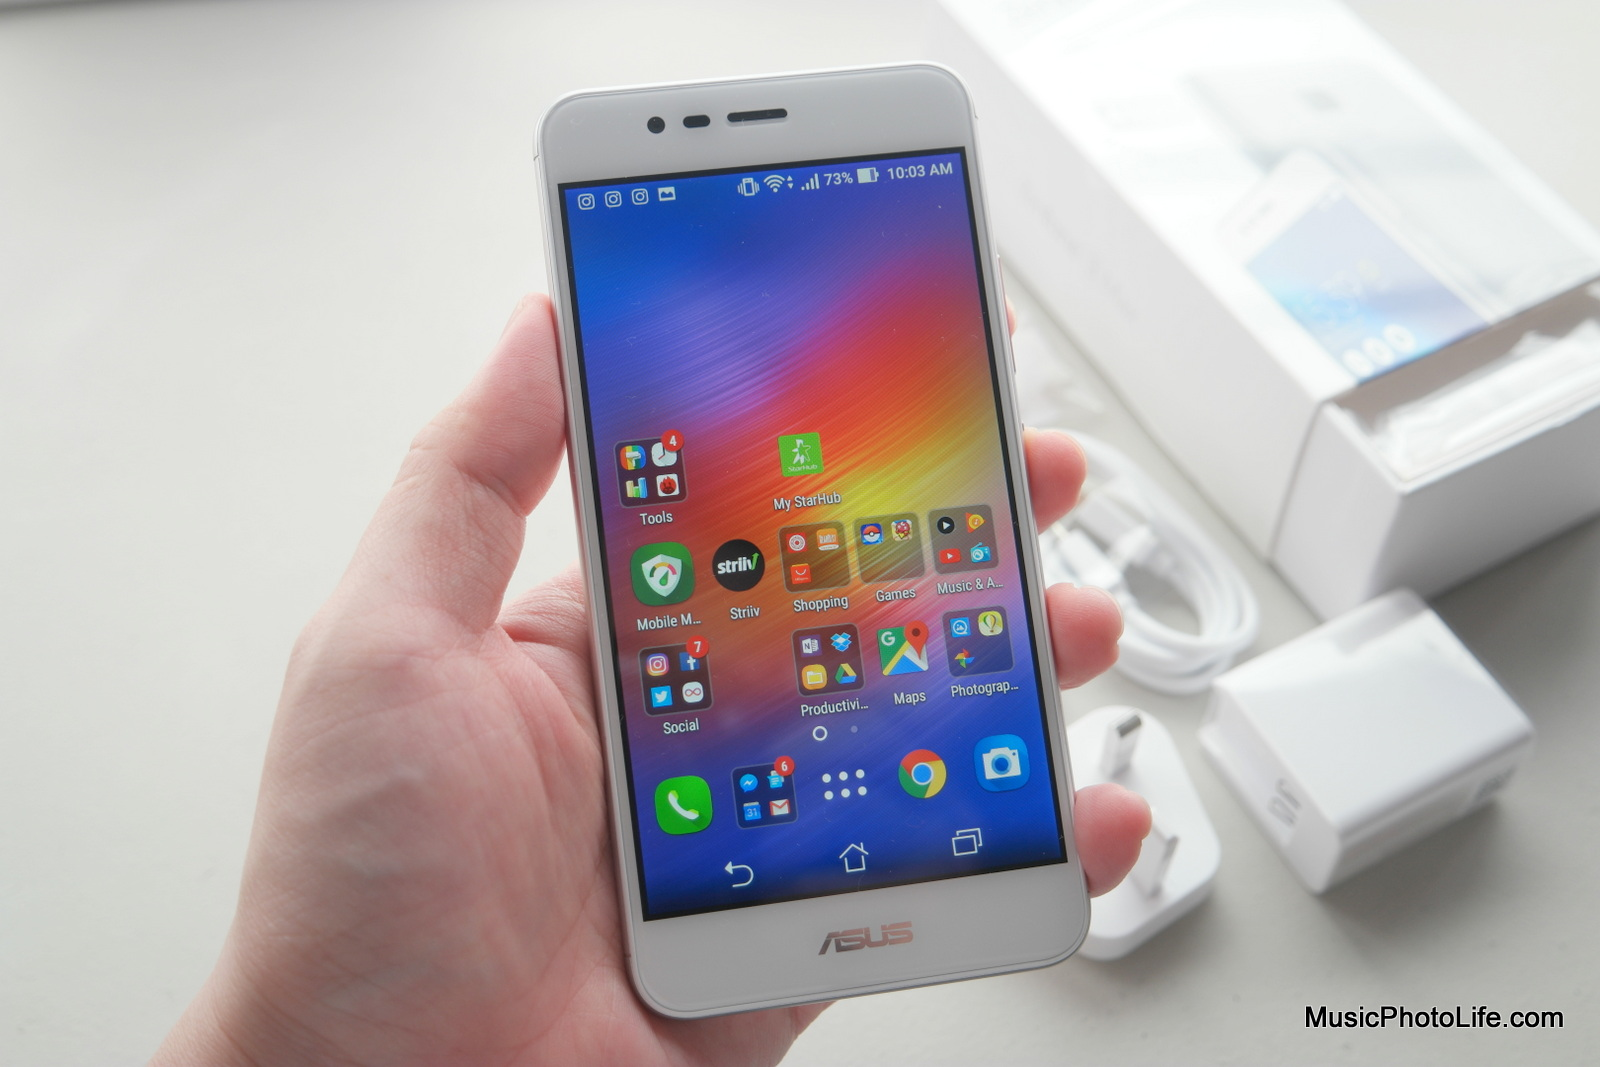 zenfone 3 max 5.5 review